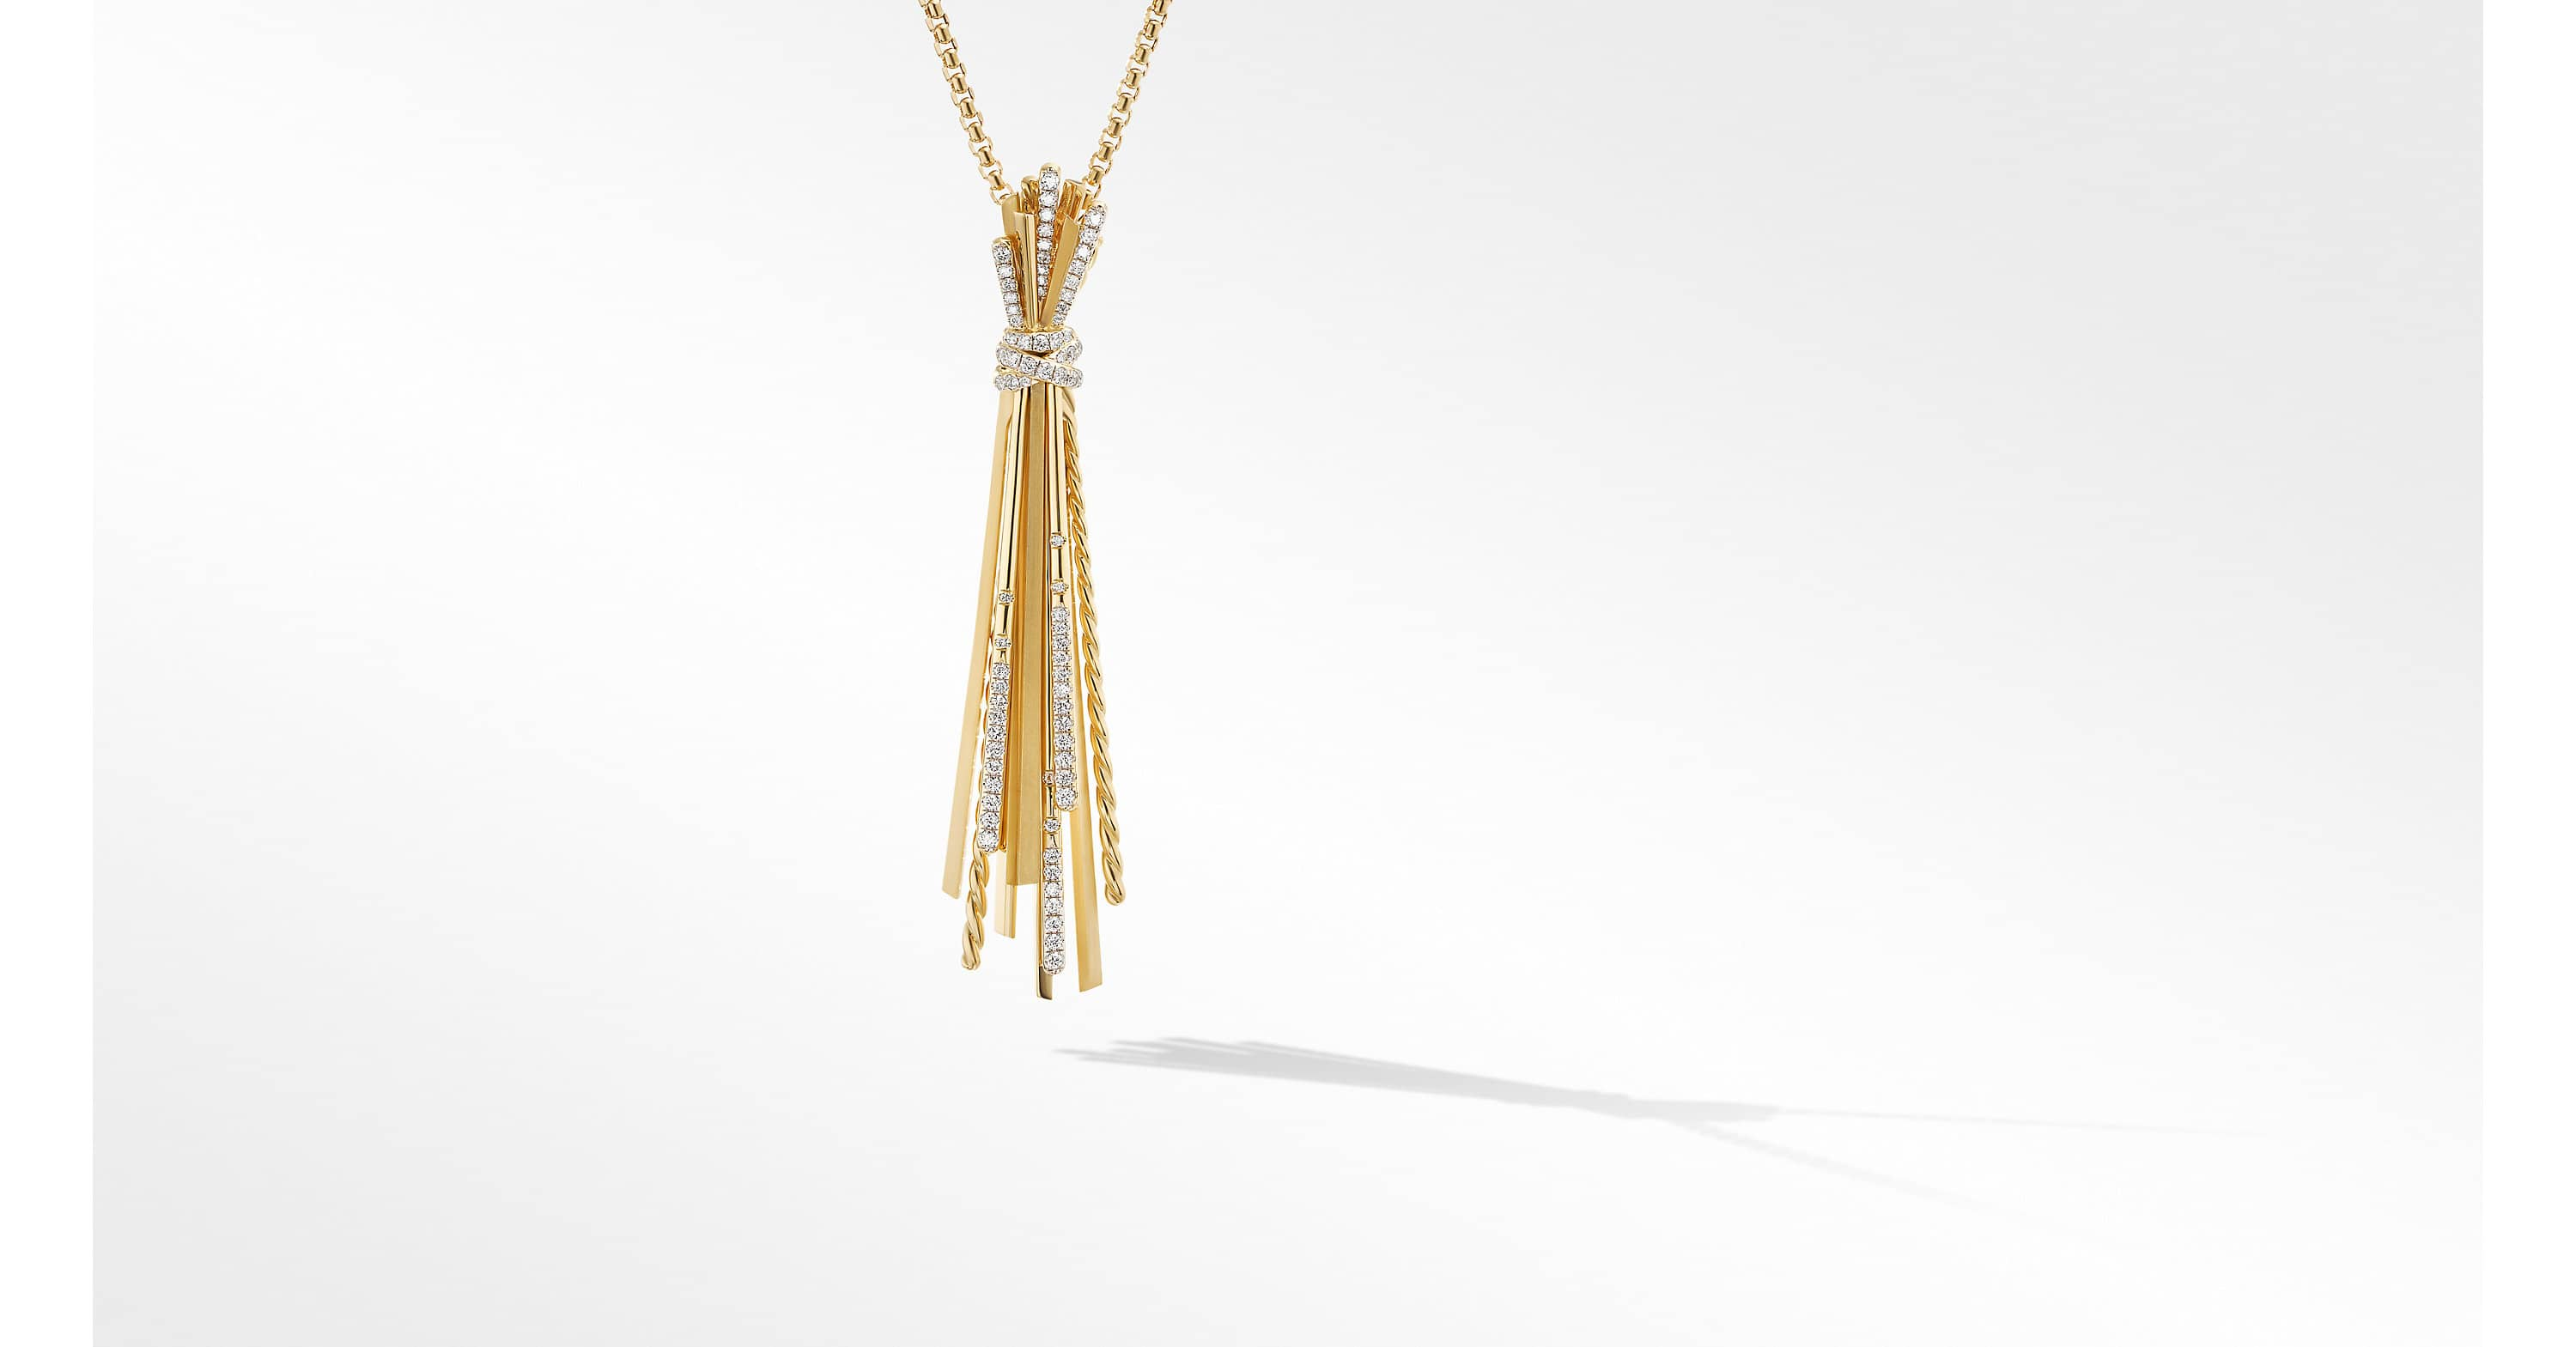 Angelika Y Slider Necklace in 18K Yellow Gold with Diamonds